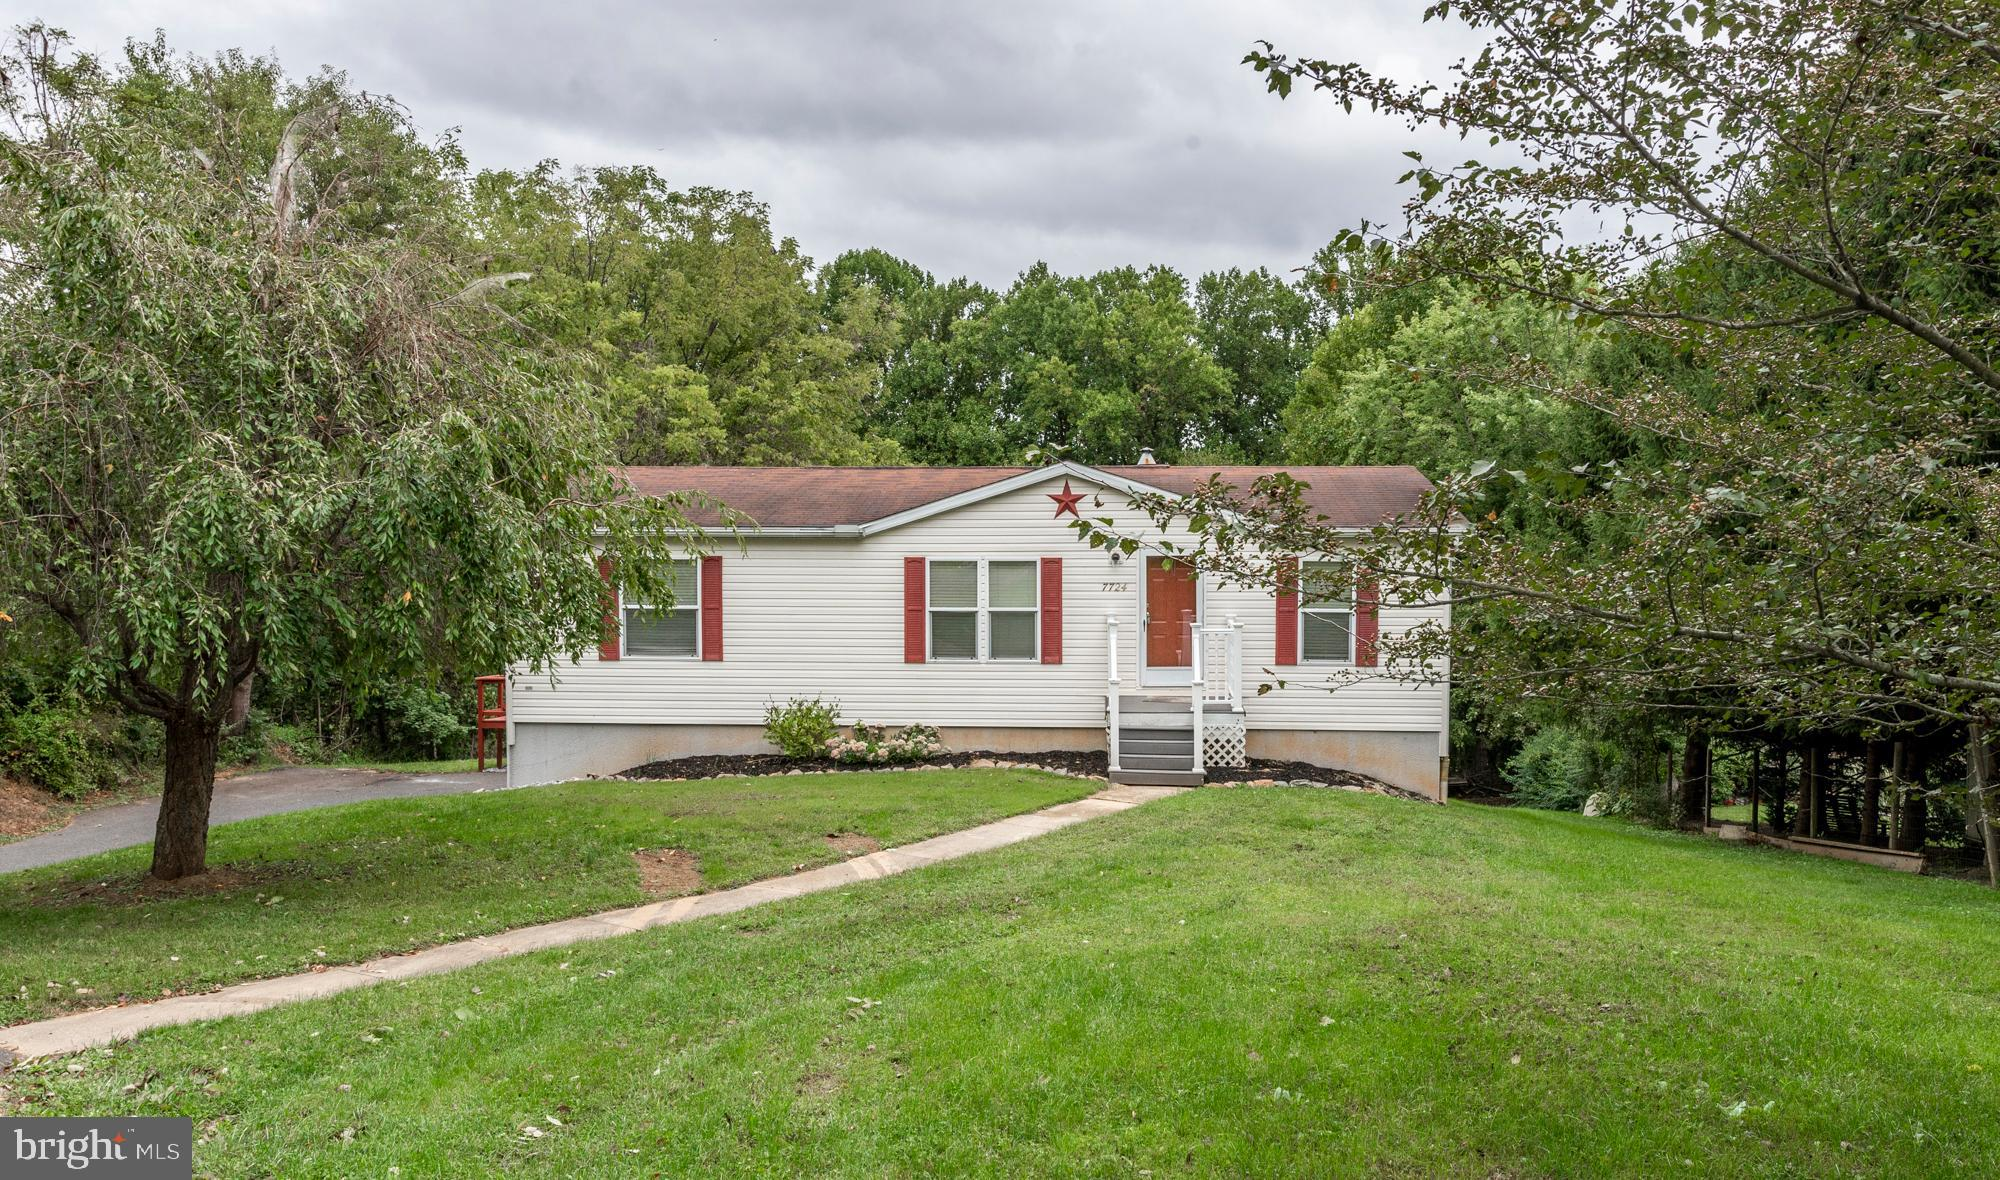 7724 WOODBINE ROAD, AIRVILLE, PA 17302